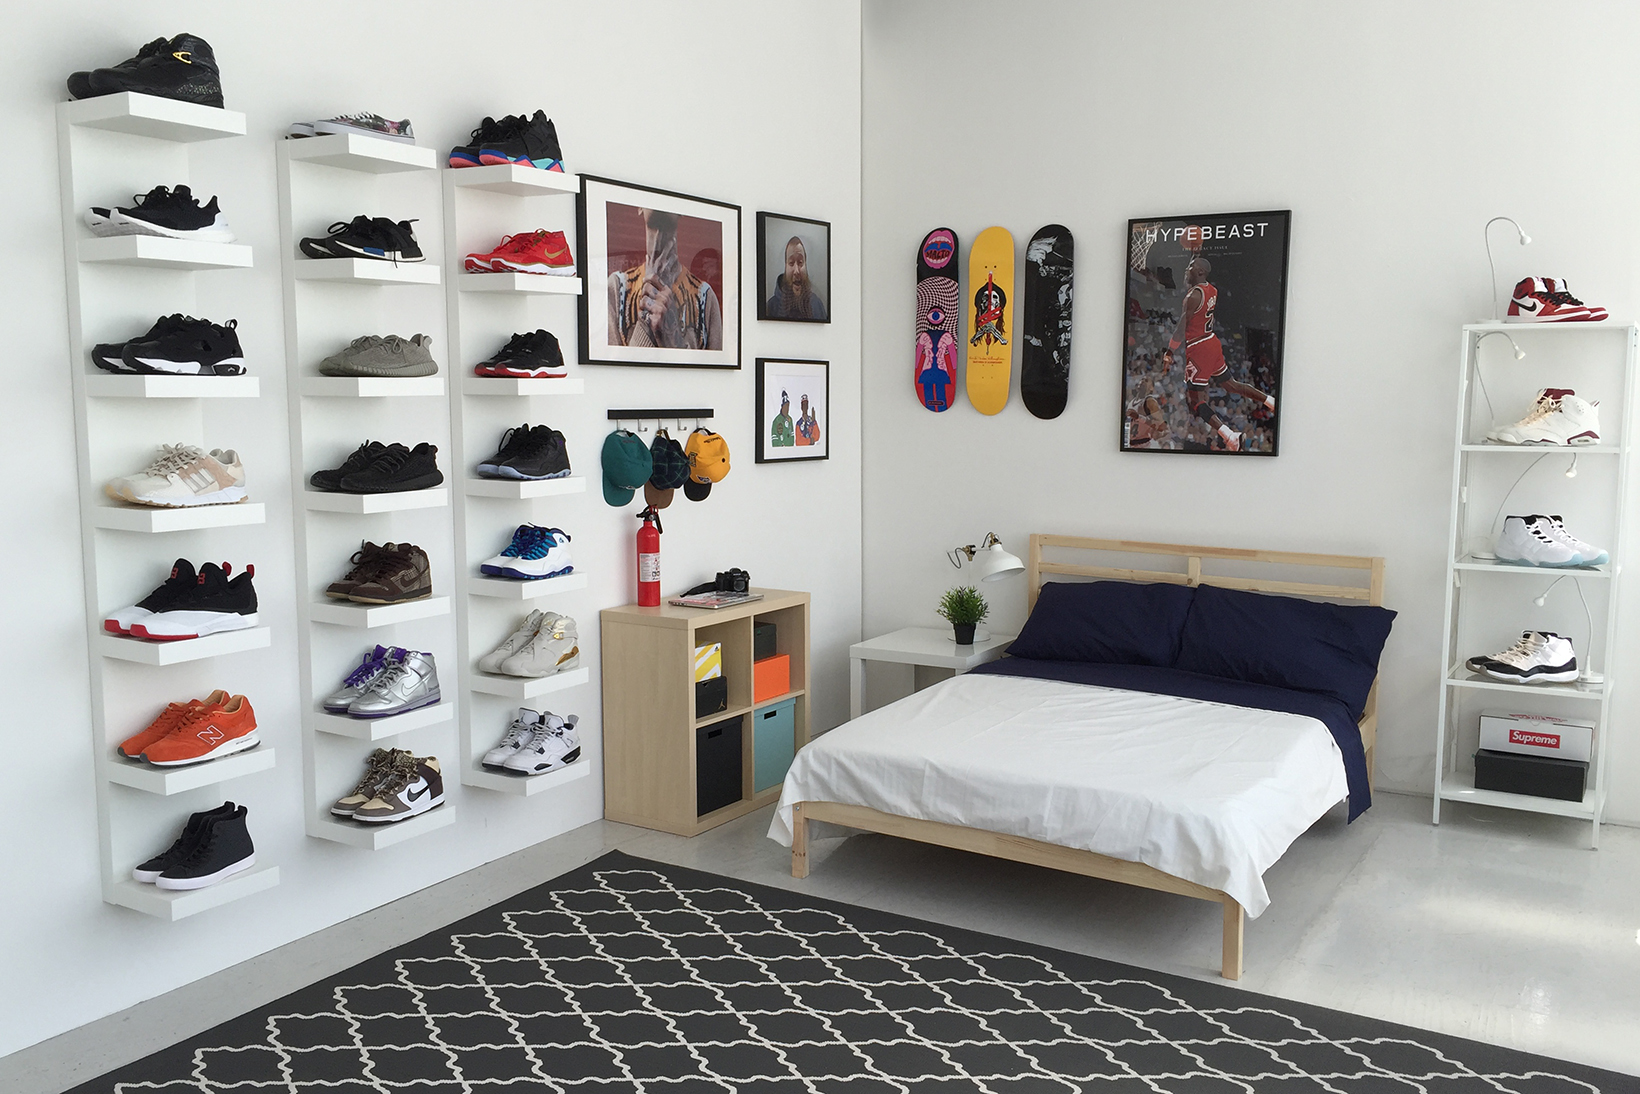 ikea and hypebeast design the ideal sneakerhead bedroom new home indoor shoes bedroom slippe end 7 19 2018 2 15 pm